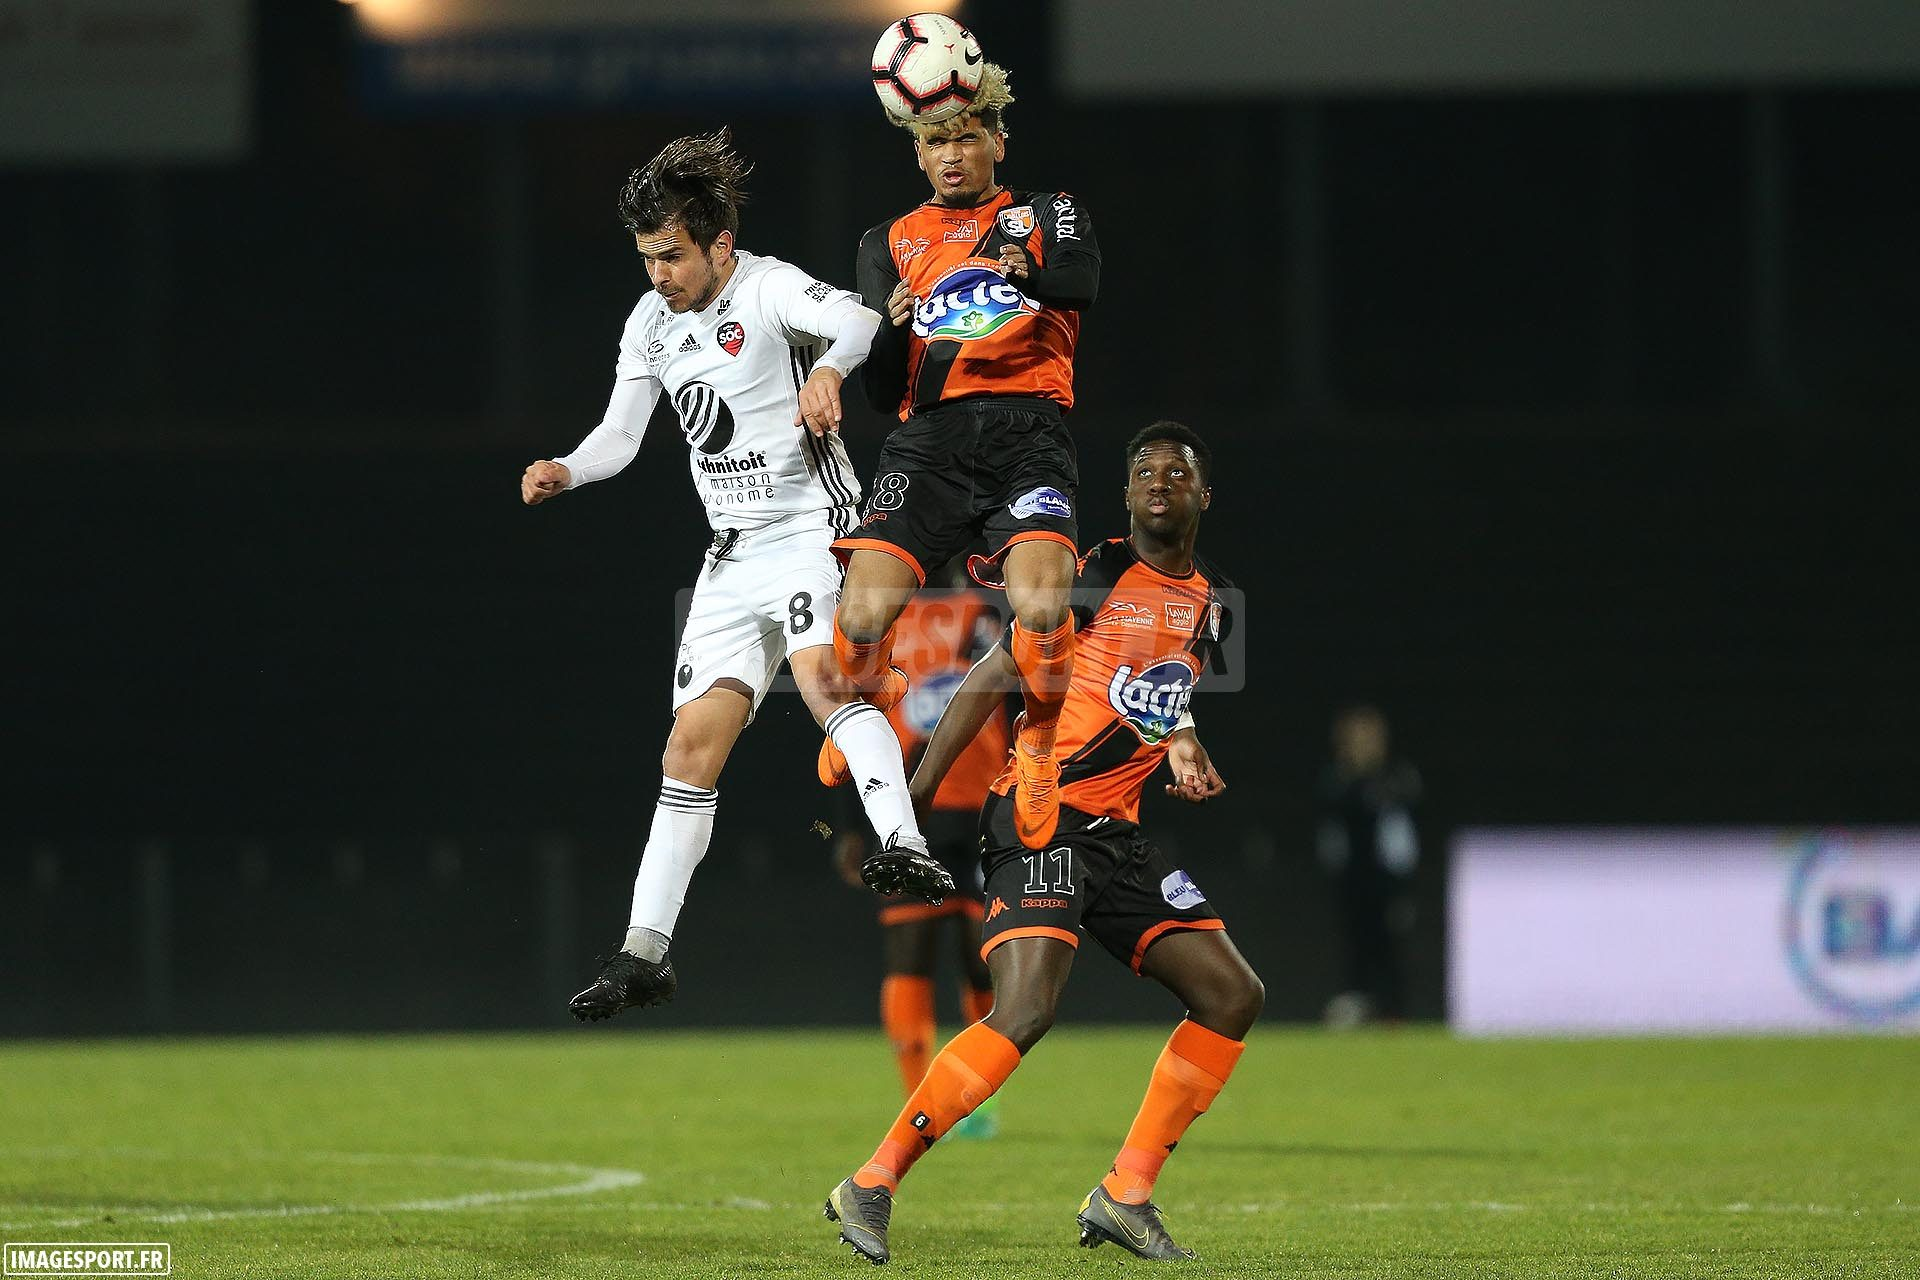 national--laval-cholet-football_19